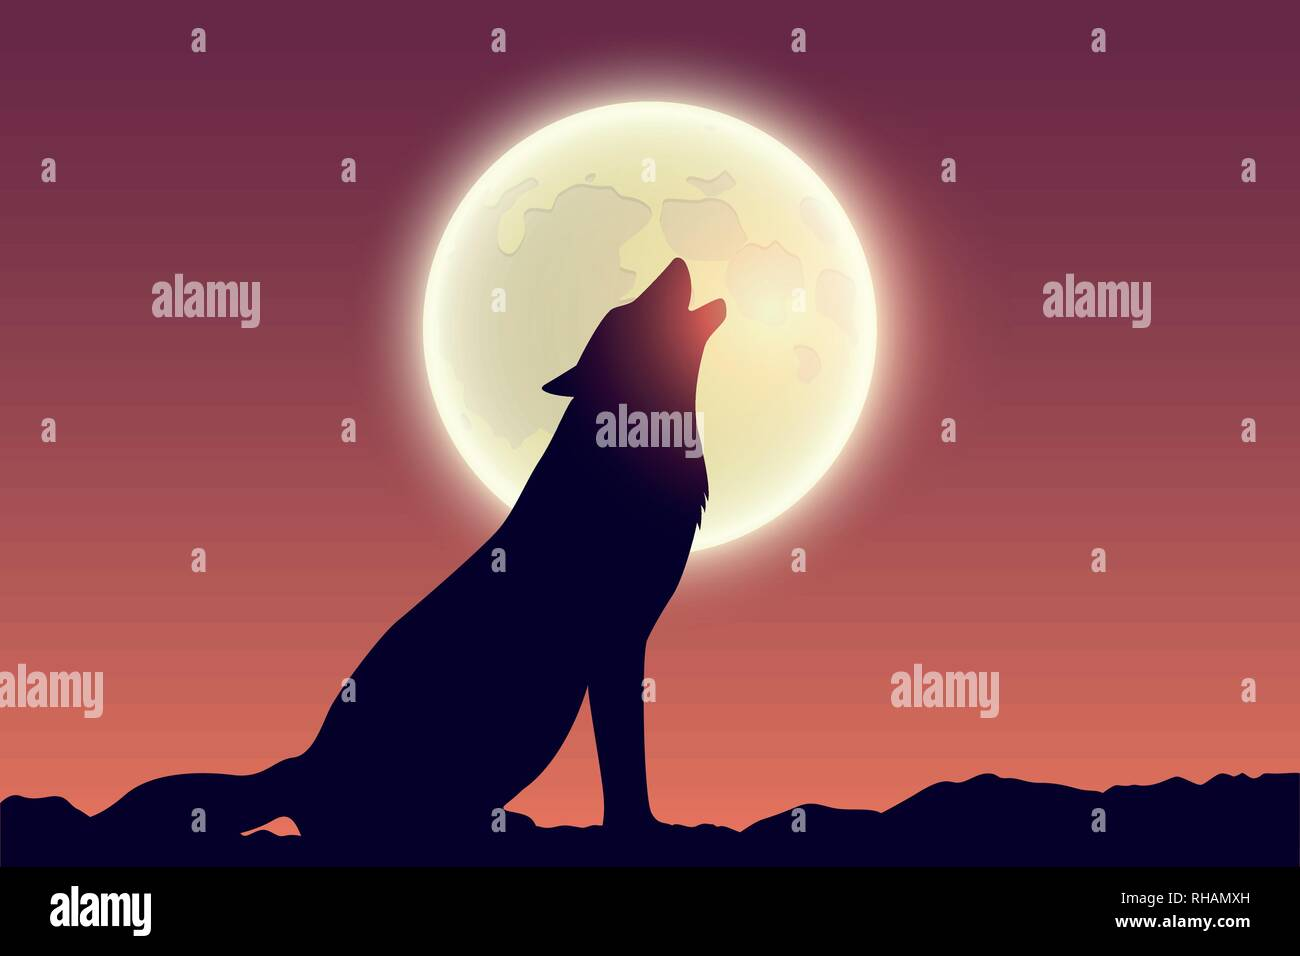 wolf howls at full moon silhouette vector illustration EPS10 - Stock Image